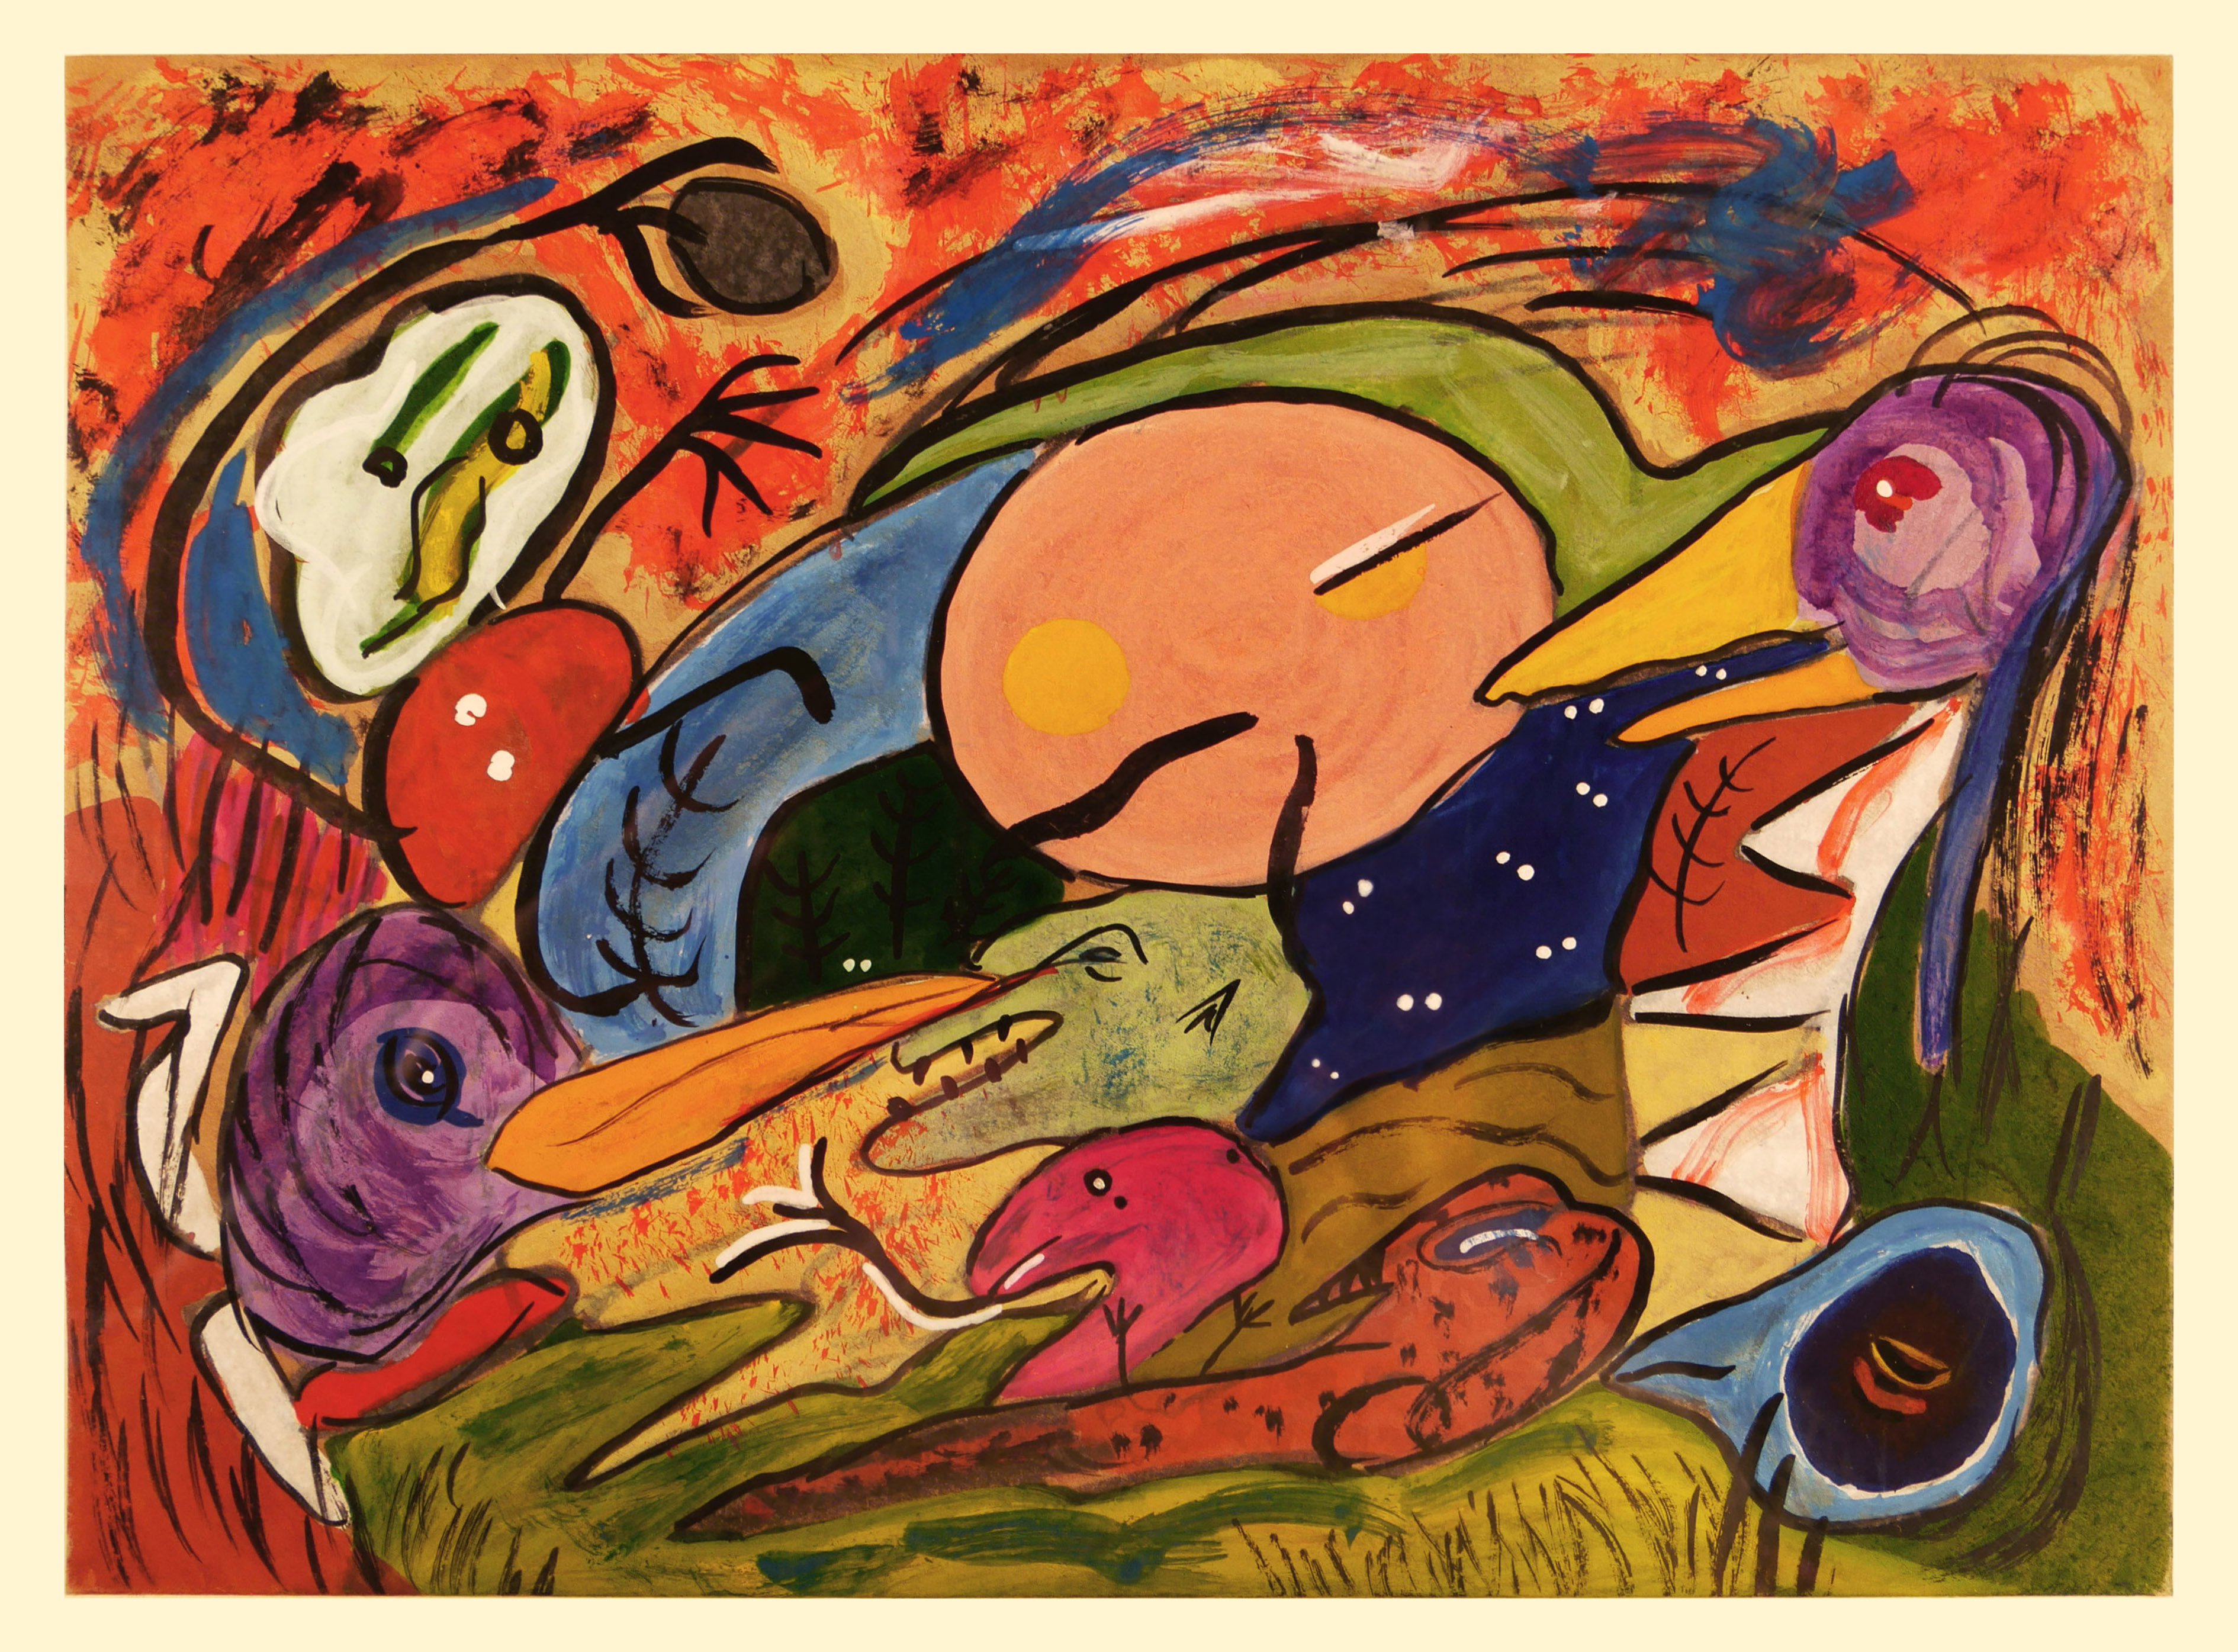 Image of painting by Clifford Odets